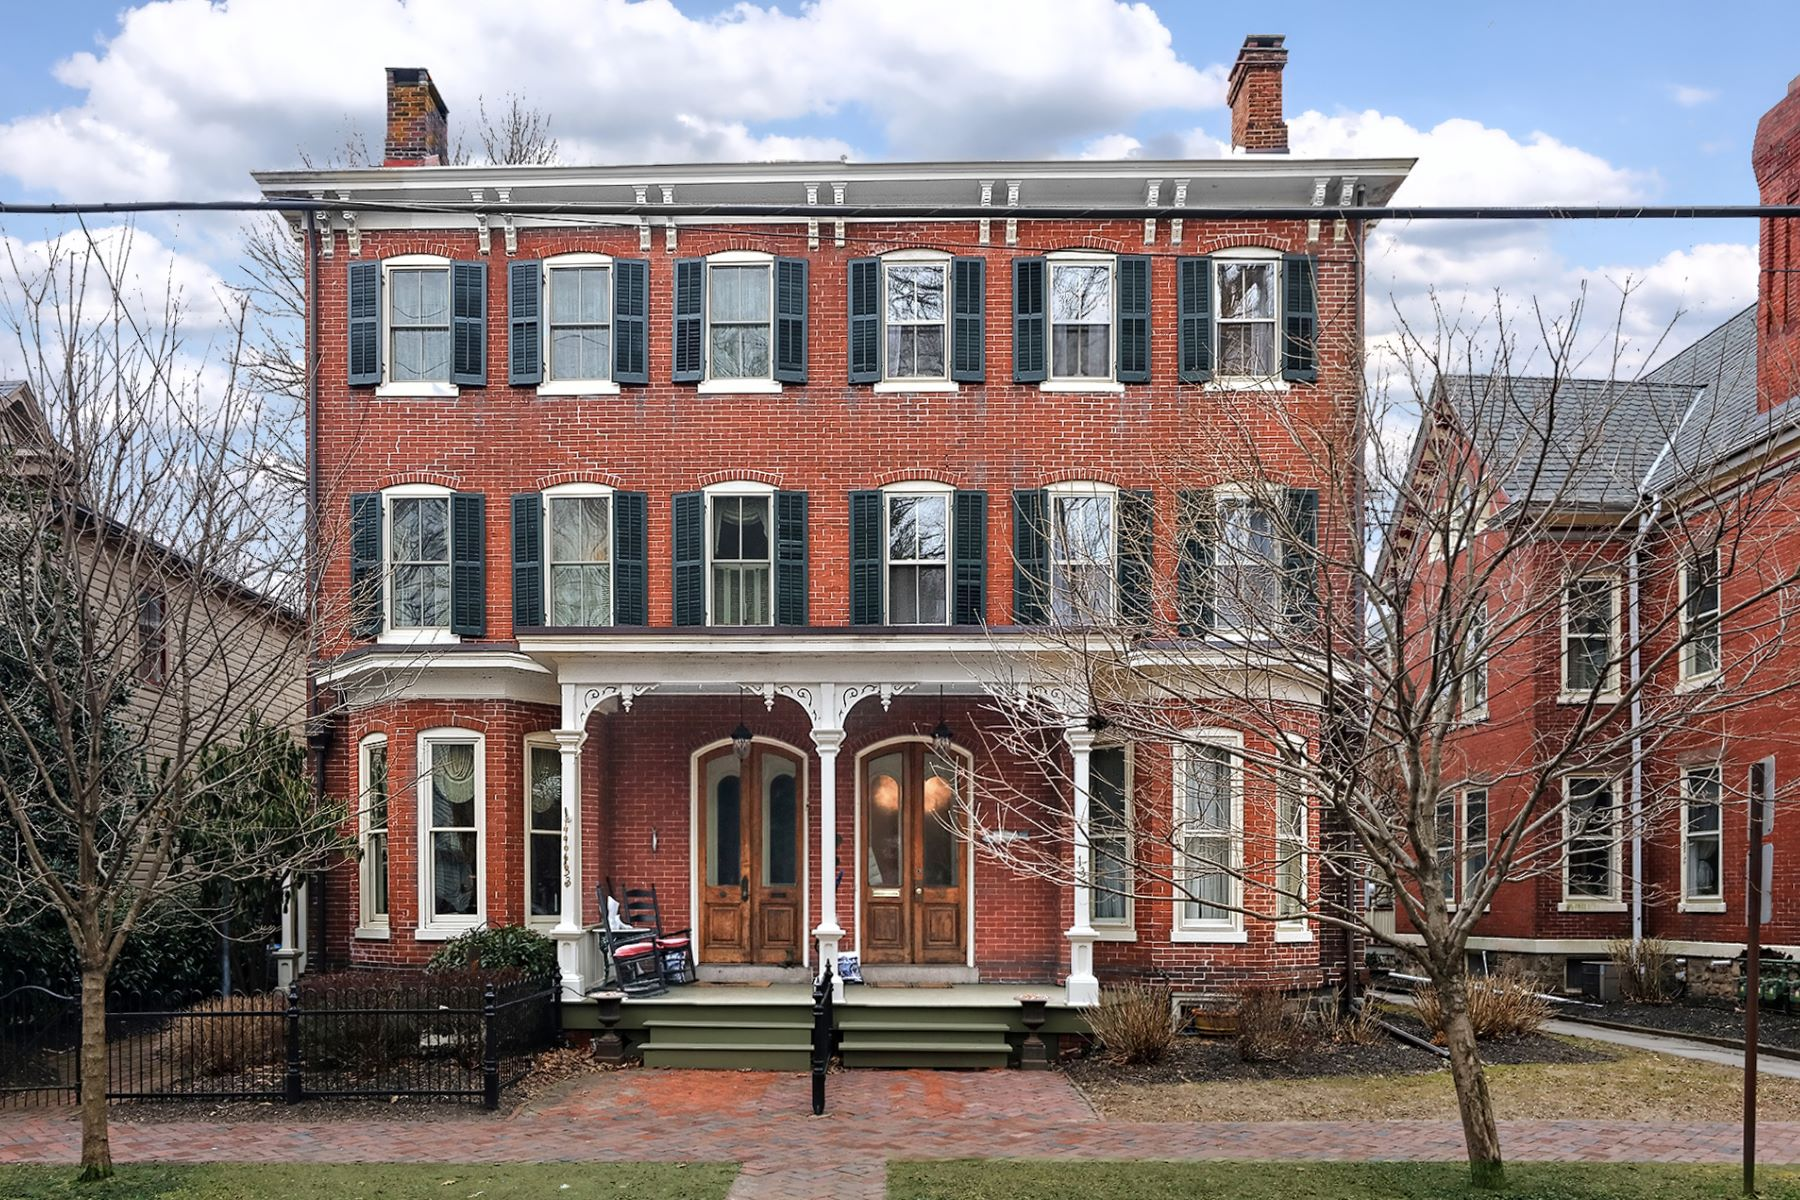 Property のために 売買 アット A Beauty In Distinguished Mansion Neighborhood 135 North Union Street, Lambertville, ニュージャージー 08530 アメリカ